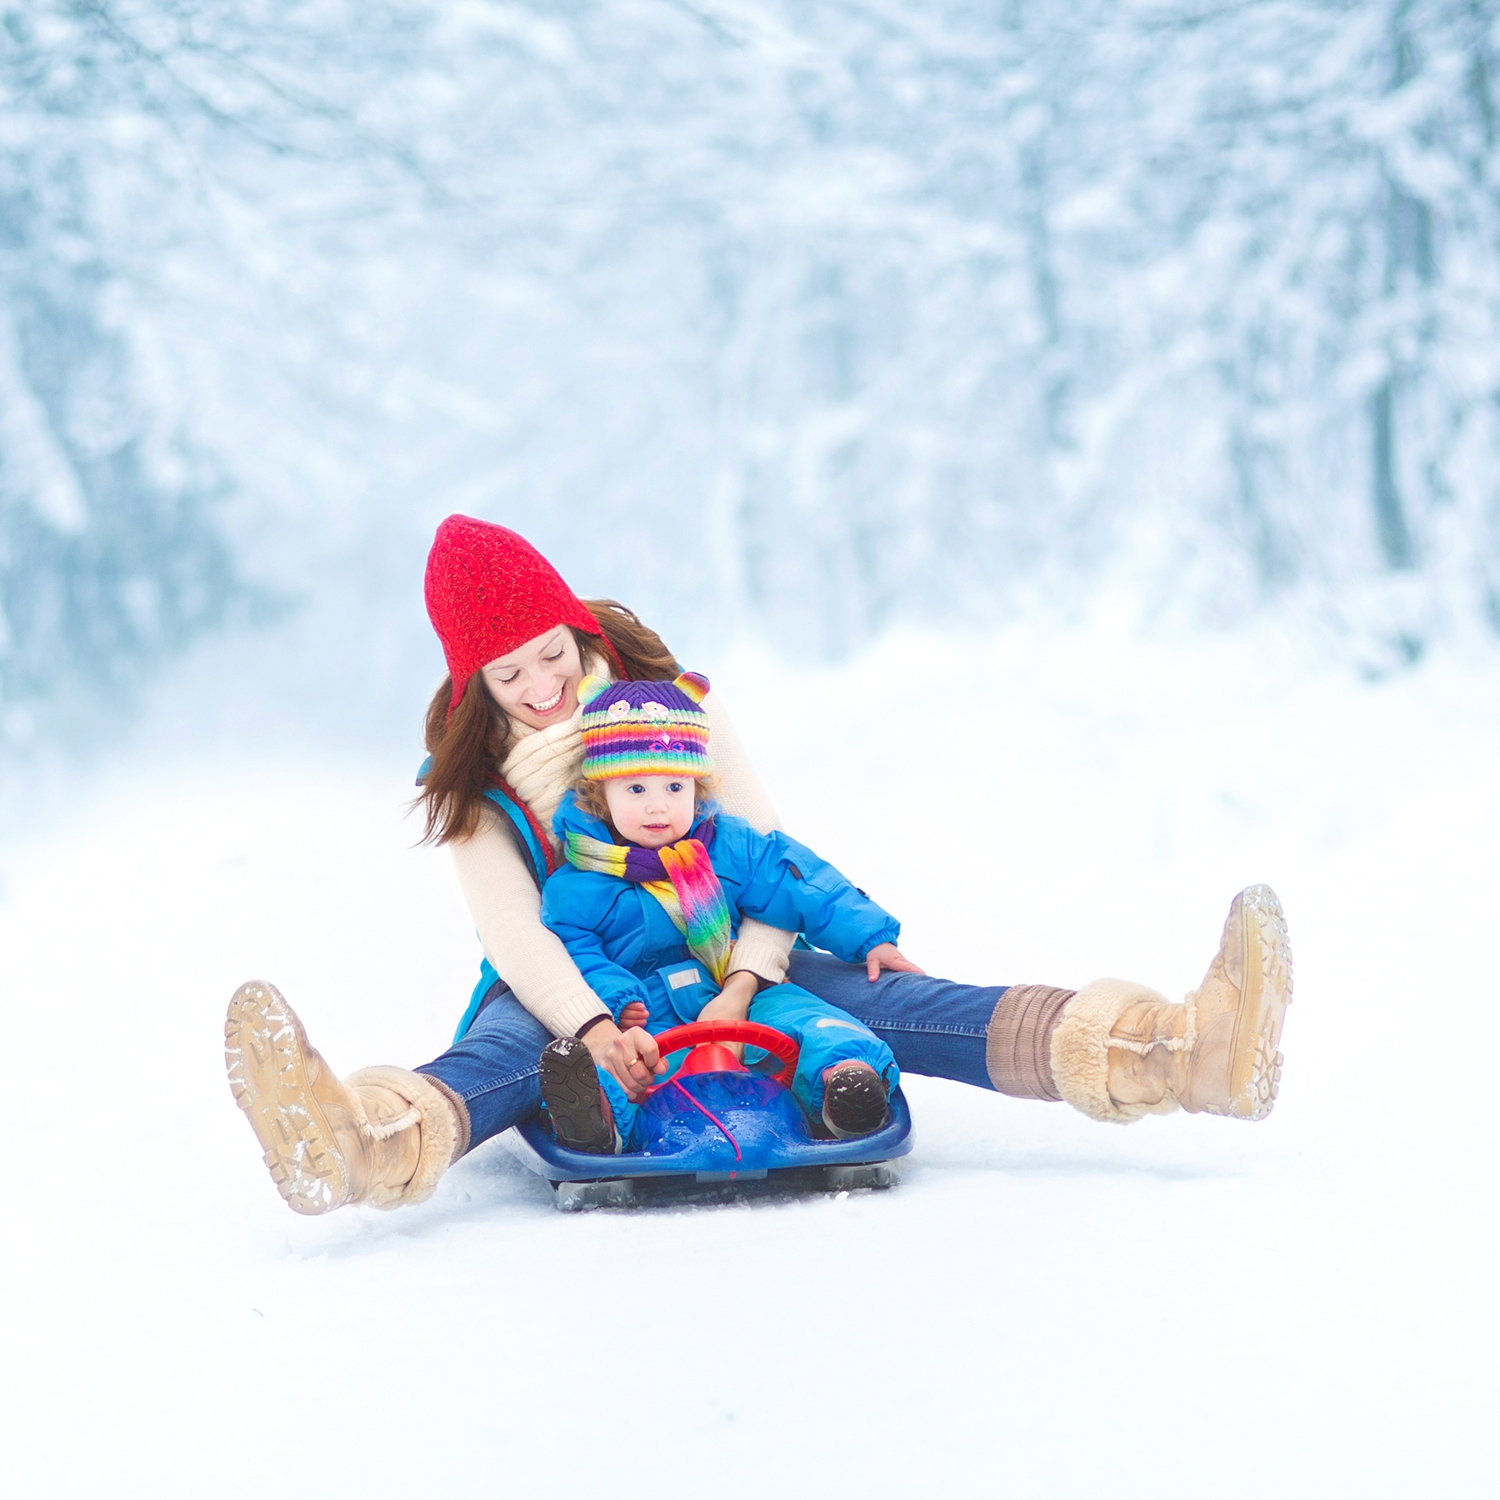 Mother-and-toddler-daughter-enjoying-sledge-ride-in-snowy-park-000038408102_Large.jpg